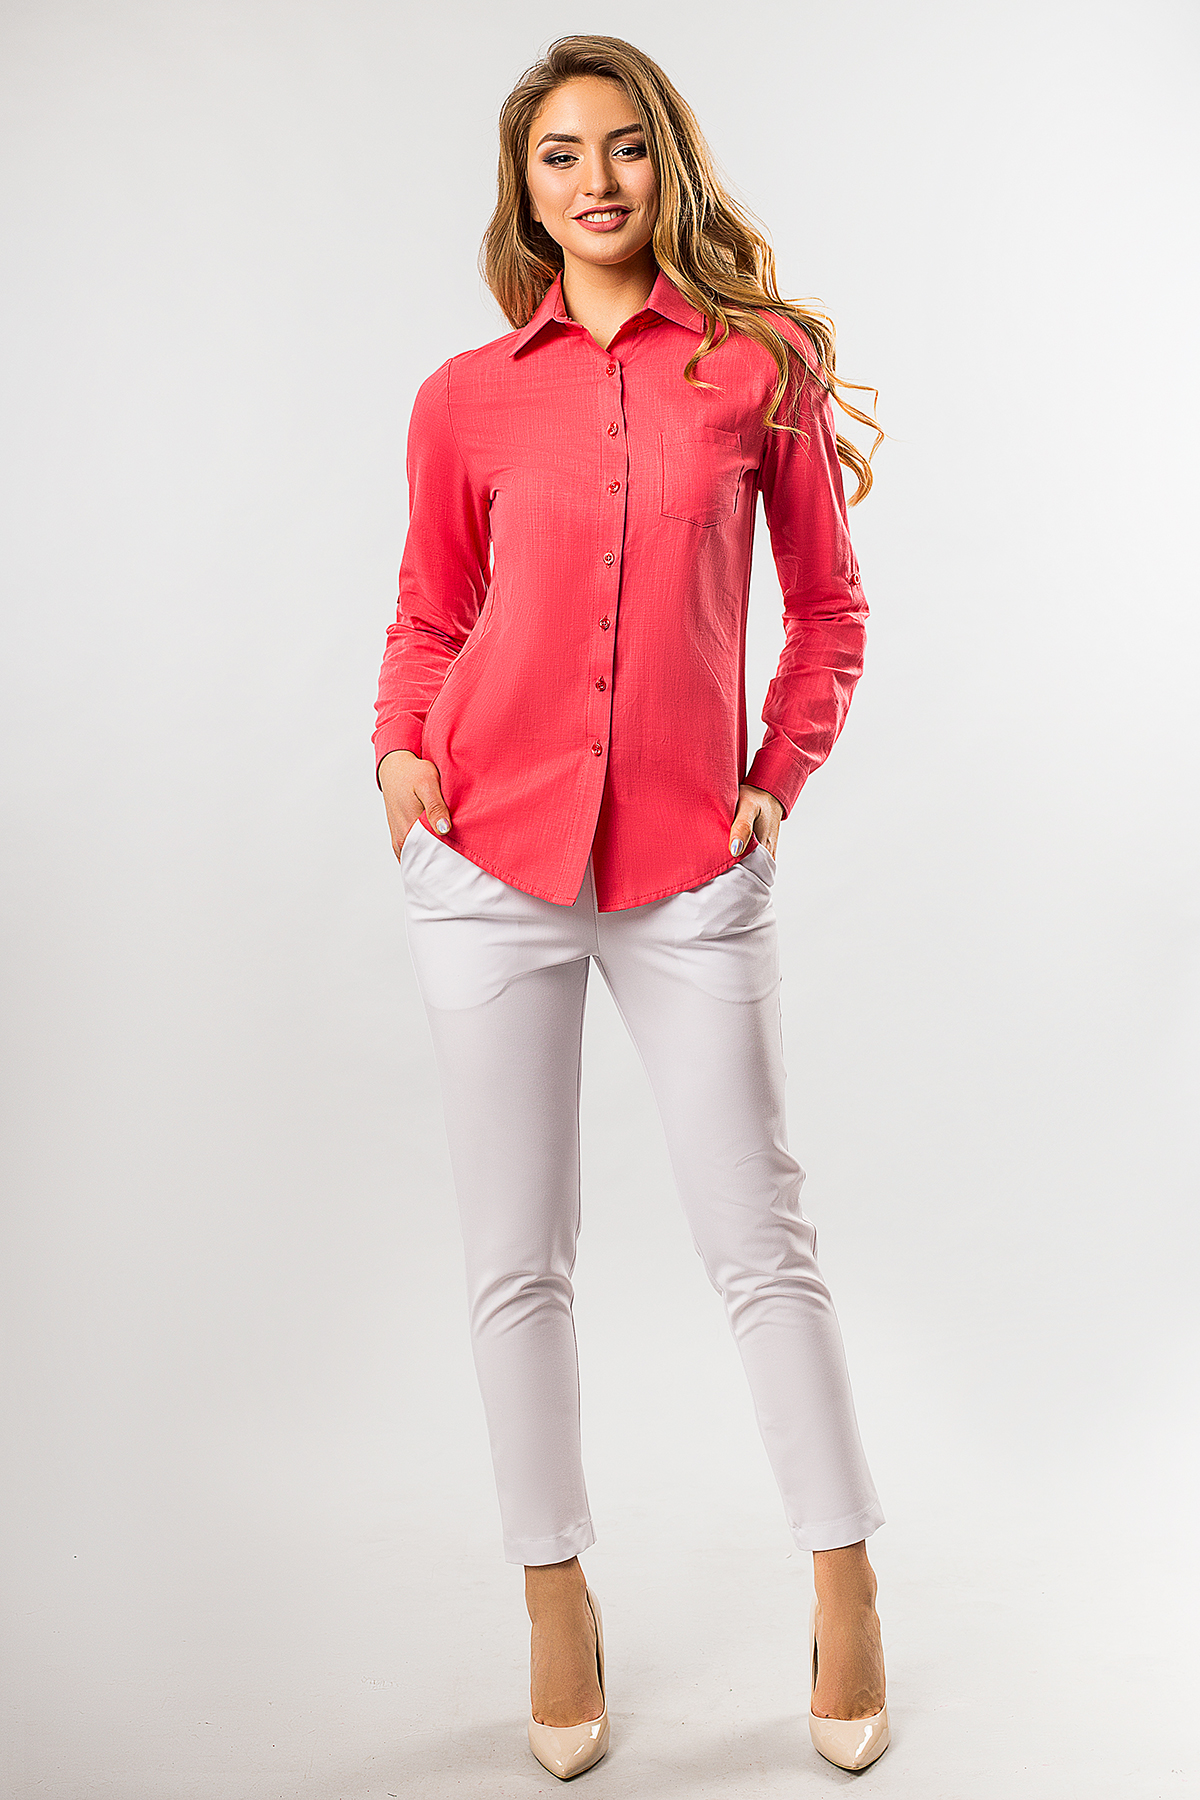 coral-shirt-stand